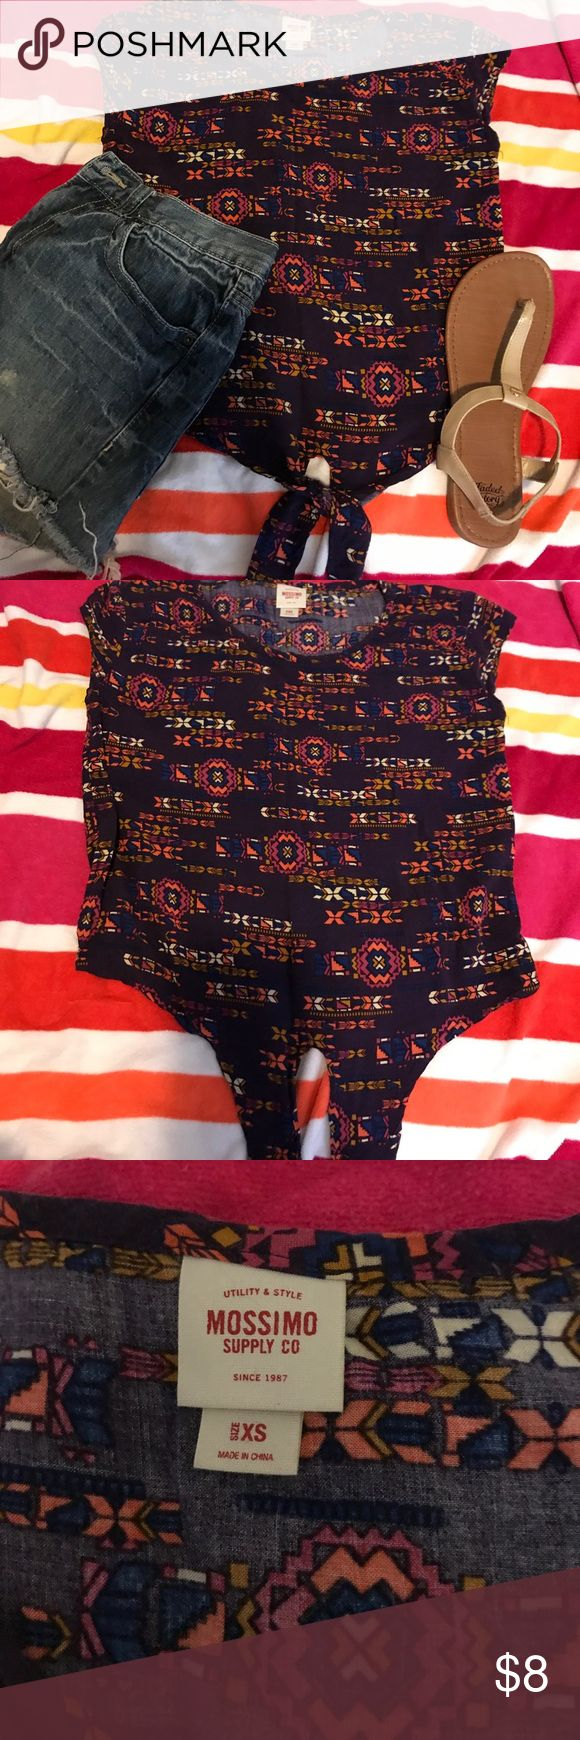 PURPLE AZTEC CROP TOP has a tie in the front. Size xs. Mission supply co. Great condition! :)) 🎀 make an offer! I usually don't counteroffer! 🎀 bundle items for a lower price! 🎀no trades 🎀no returns if item does not fit. You can ask for measurements! Mossimo Supply Co Tops Crop Tops